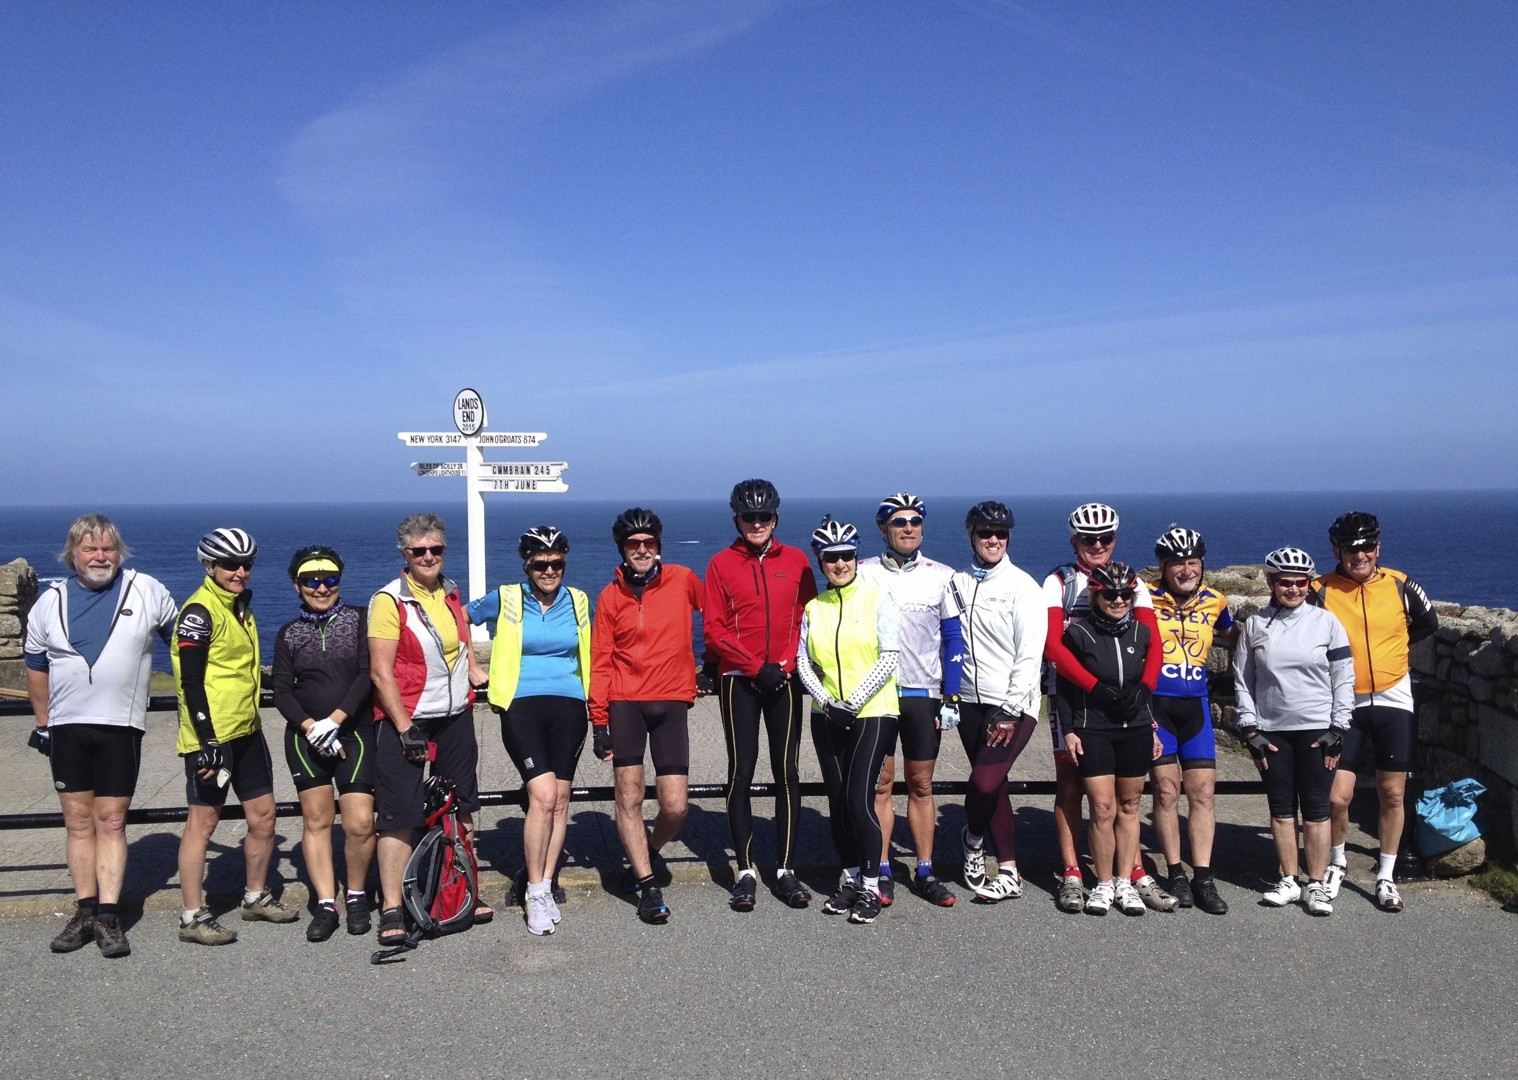 LEJOG5.jpg - UK - Land's End to John O'Groats Classic (16 days) - Guided Road Cycling Holiday - Road Cycling